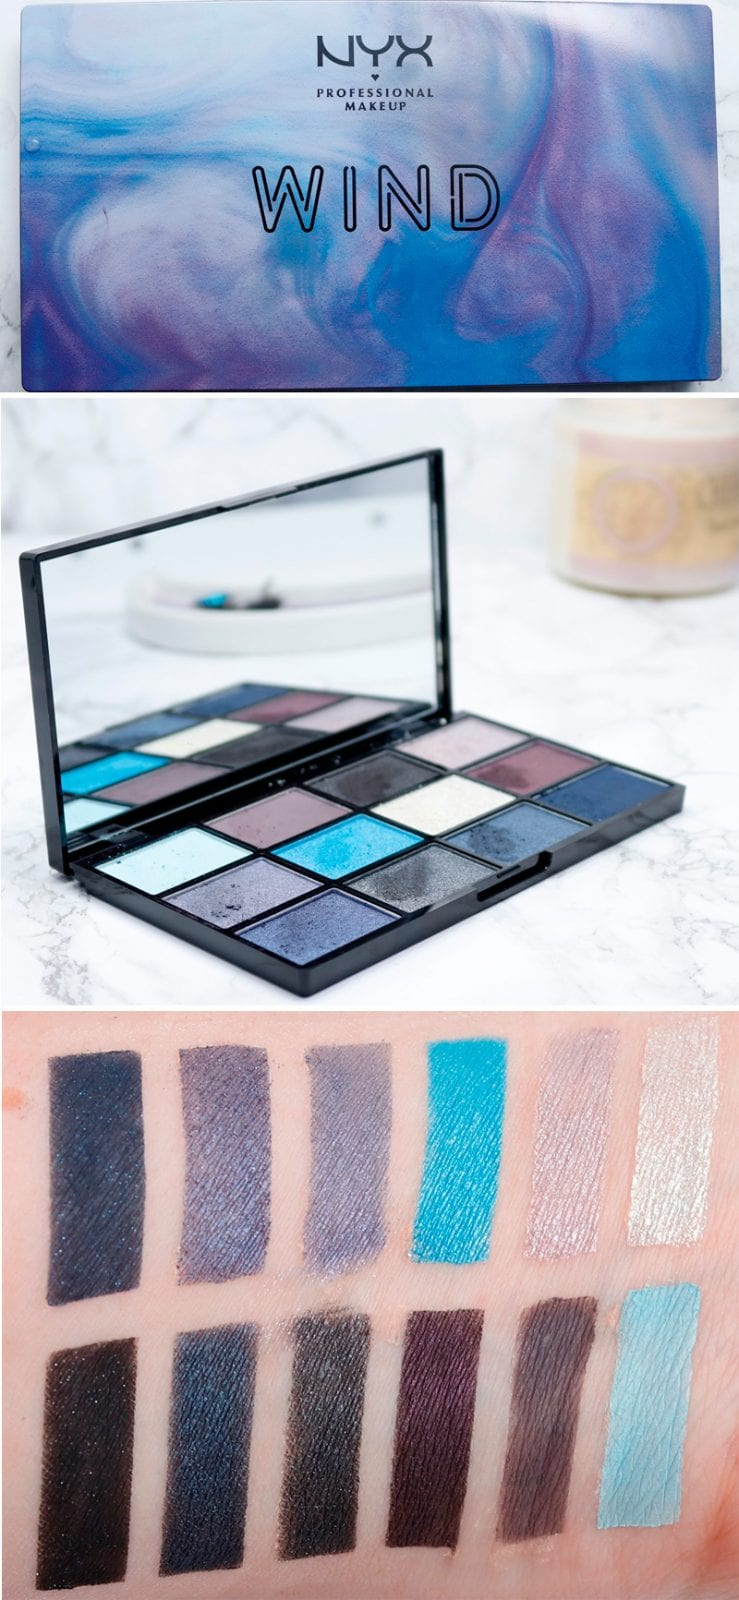 Nyx In Your Element Wind Palette Review, Swatches Look. Do you love cool toned eyeshadows such as blues, grays and violet? Then you need to see the Nyx Wind palette!